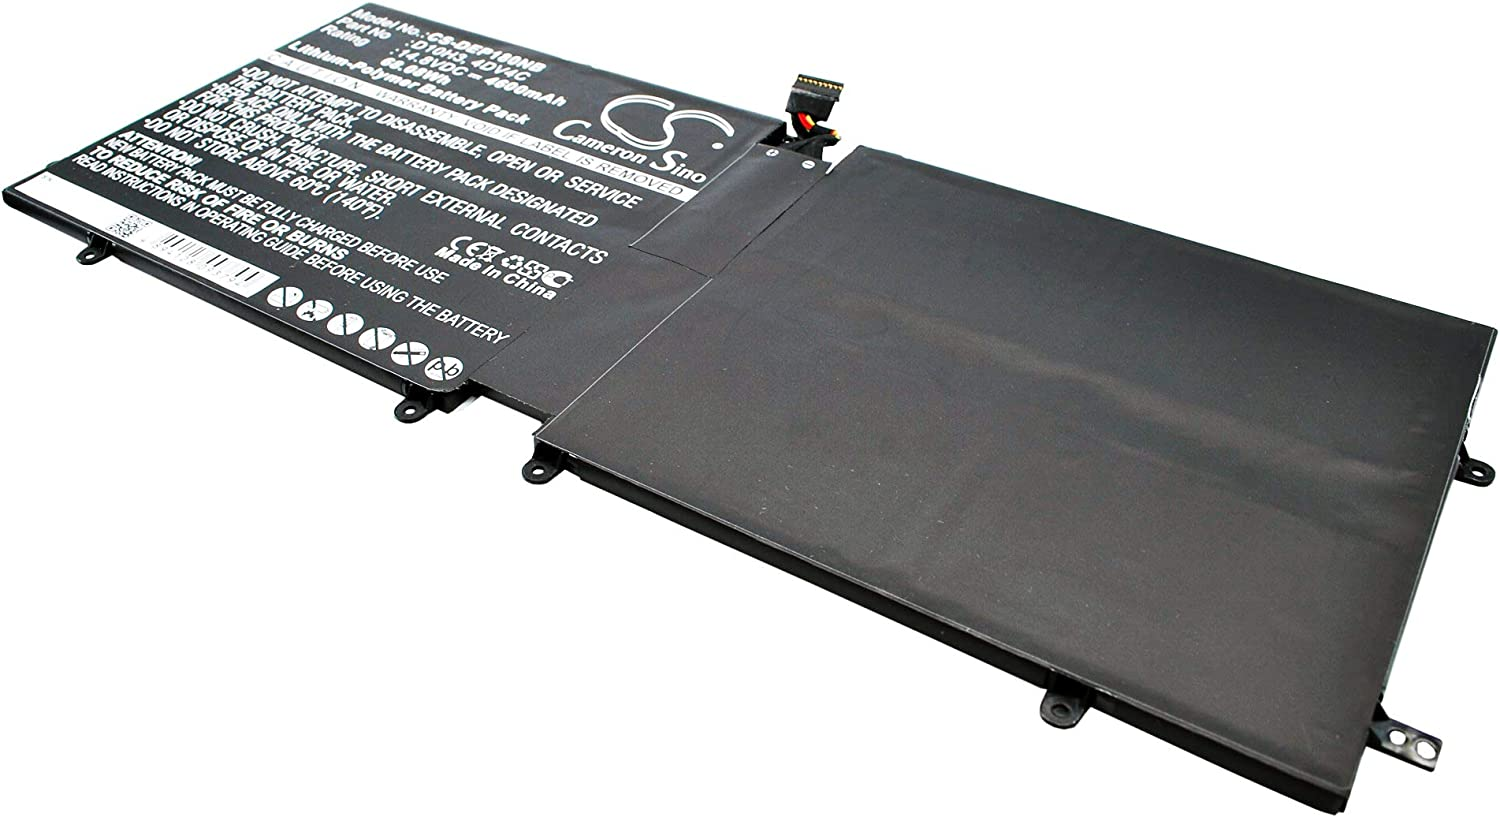 4600mAh Replacement for DELL XPS 18, XPS 18 1810, XPS 18 1820 Battery, P/N 4DV4C, 63FK6, D10H3